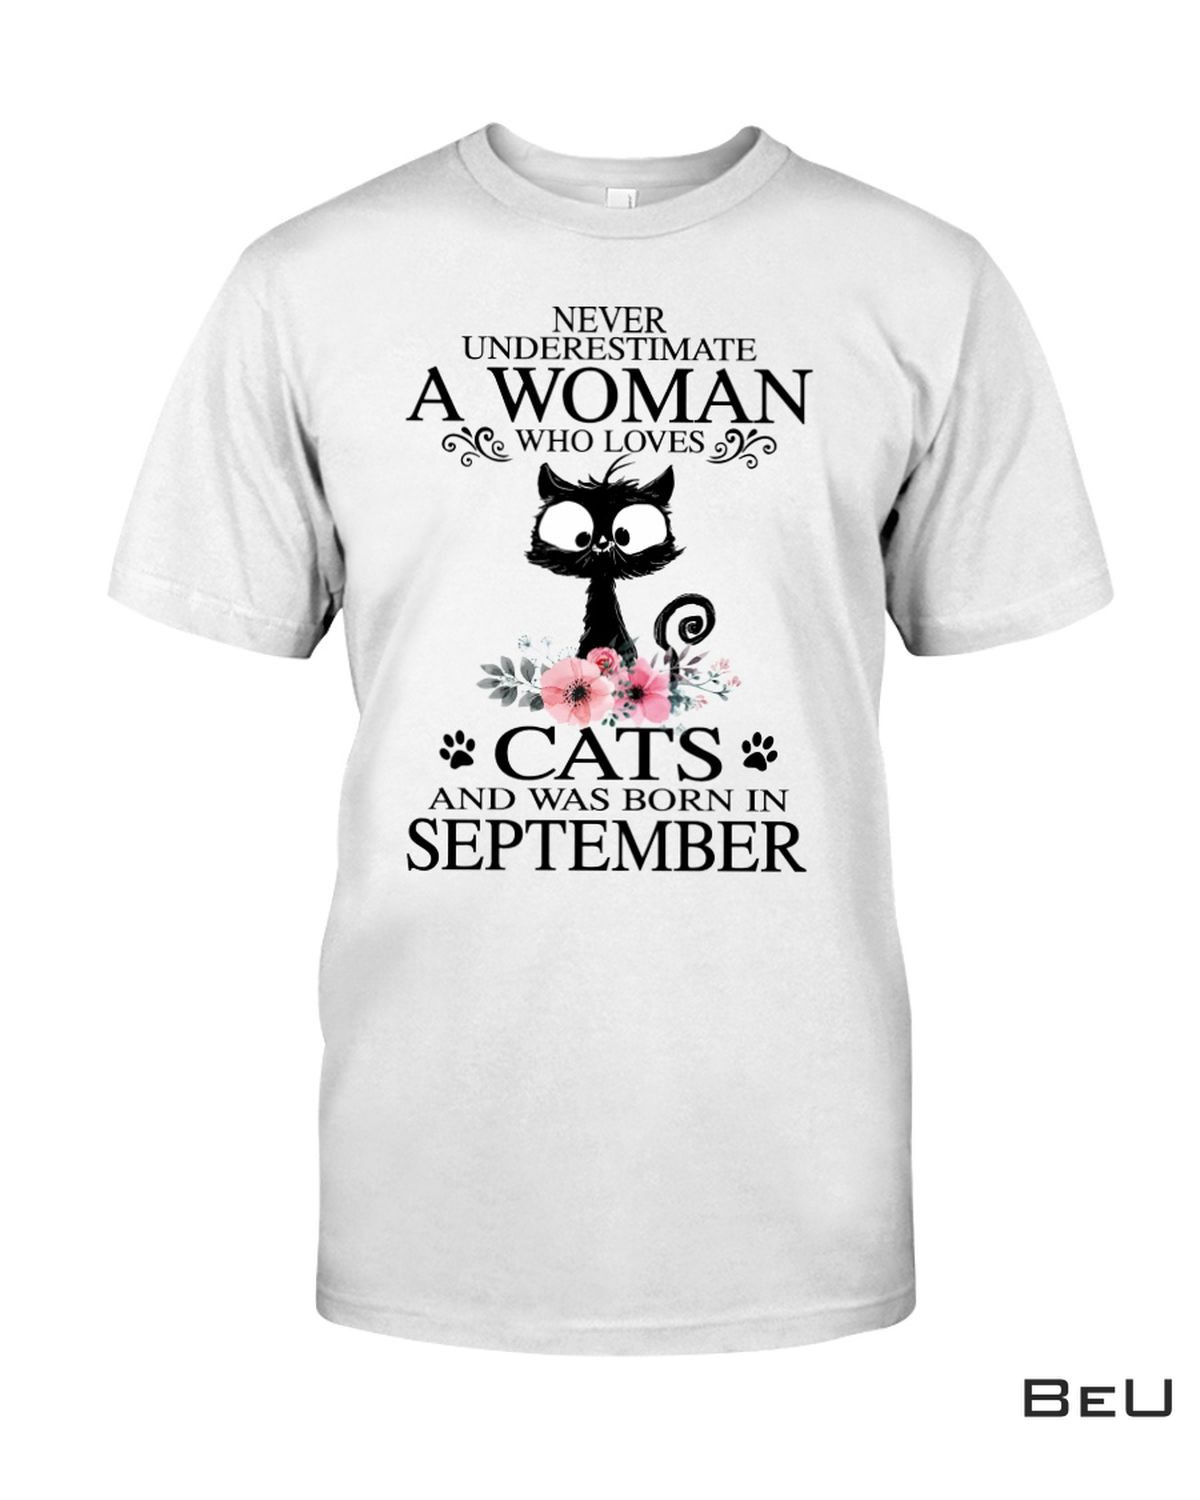 A Woman Who Loves Cats And Was Born In September Shirt, hoodie, tank top